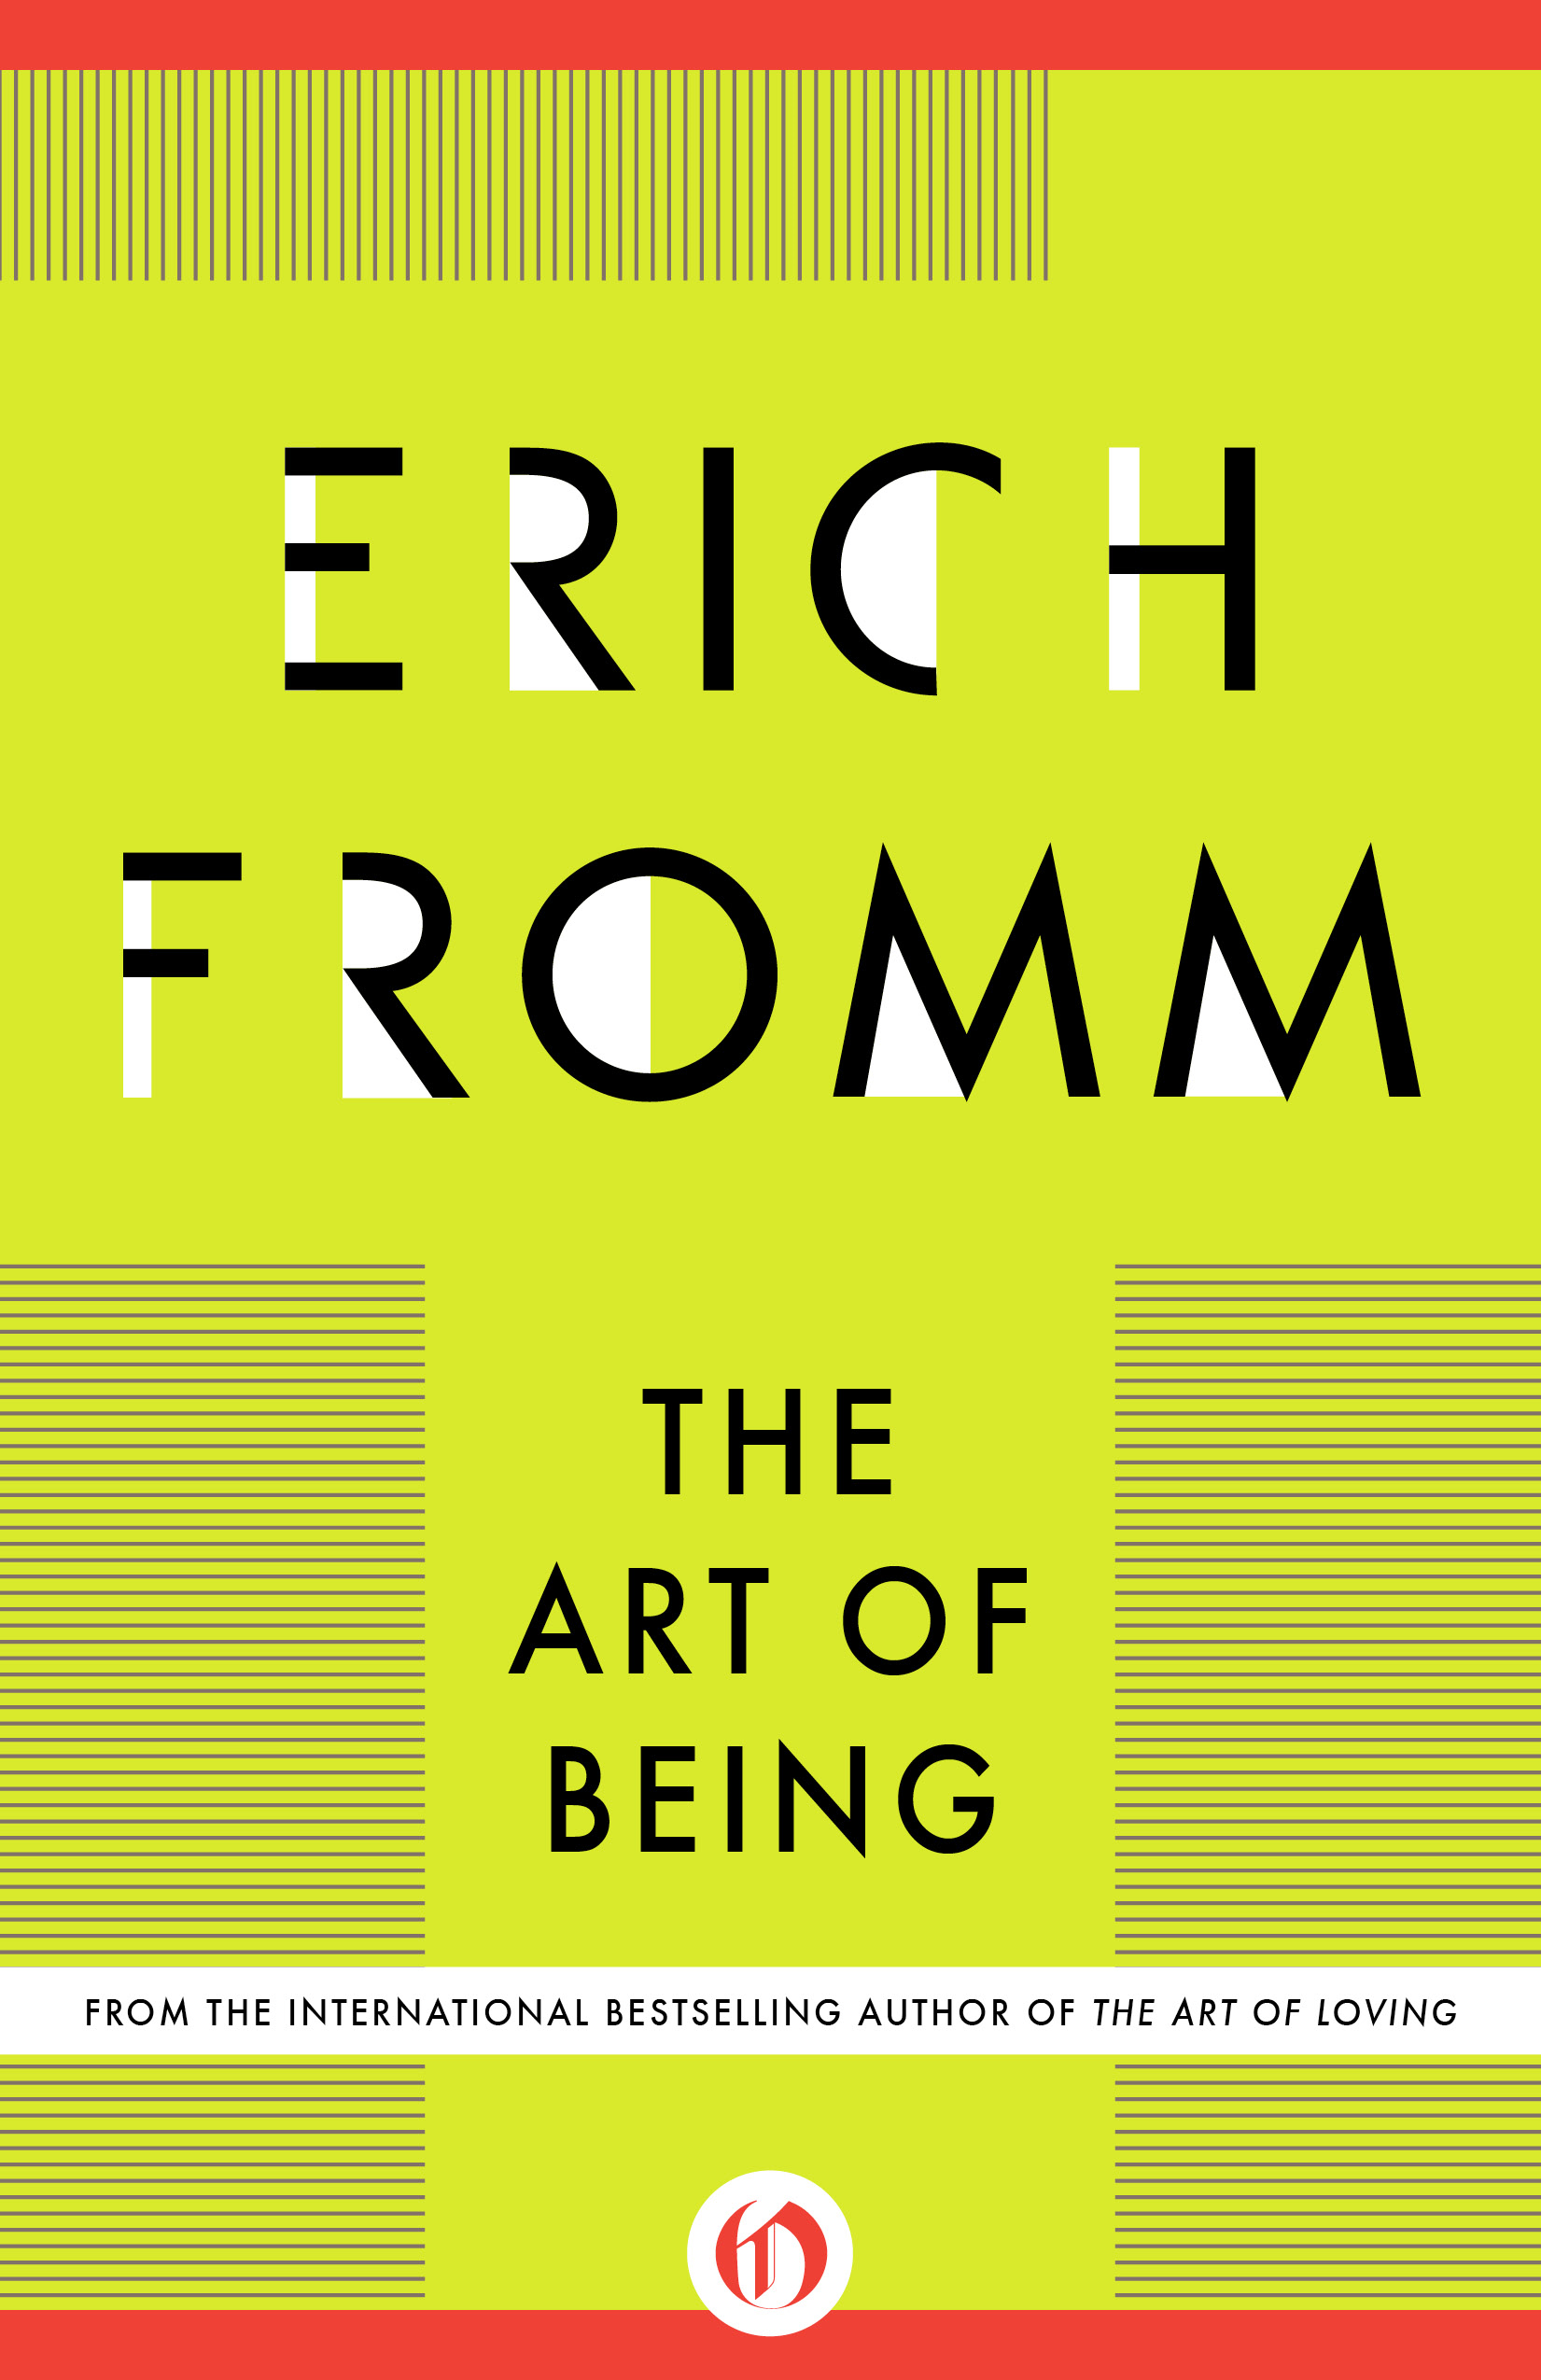 The Art of Being By: Erich Fromm